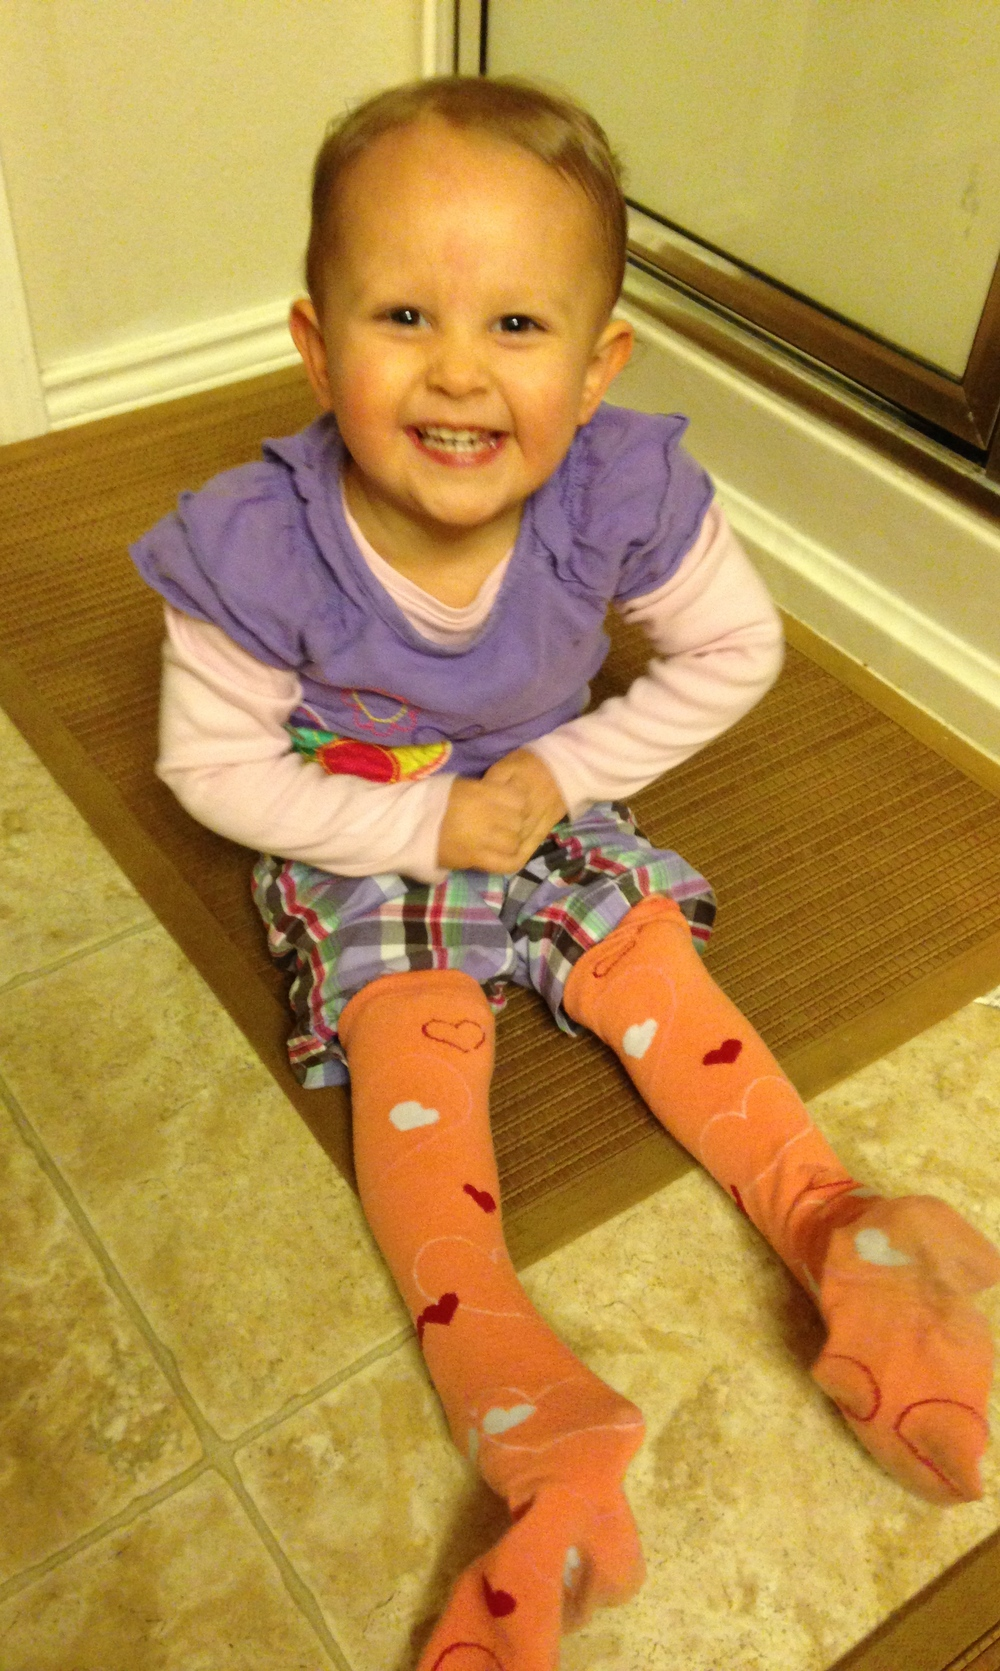 Wednesday - Apparently K thought my socks were community property.